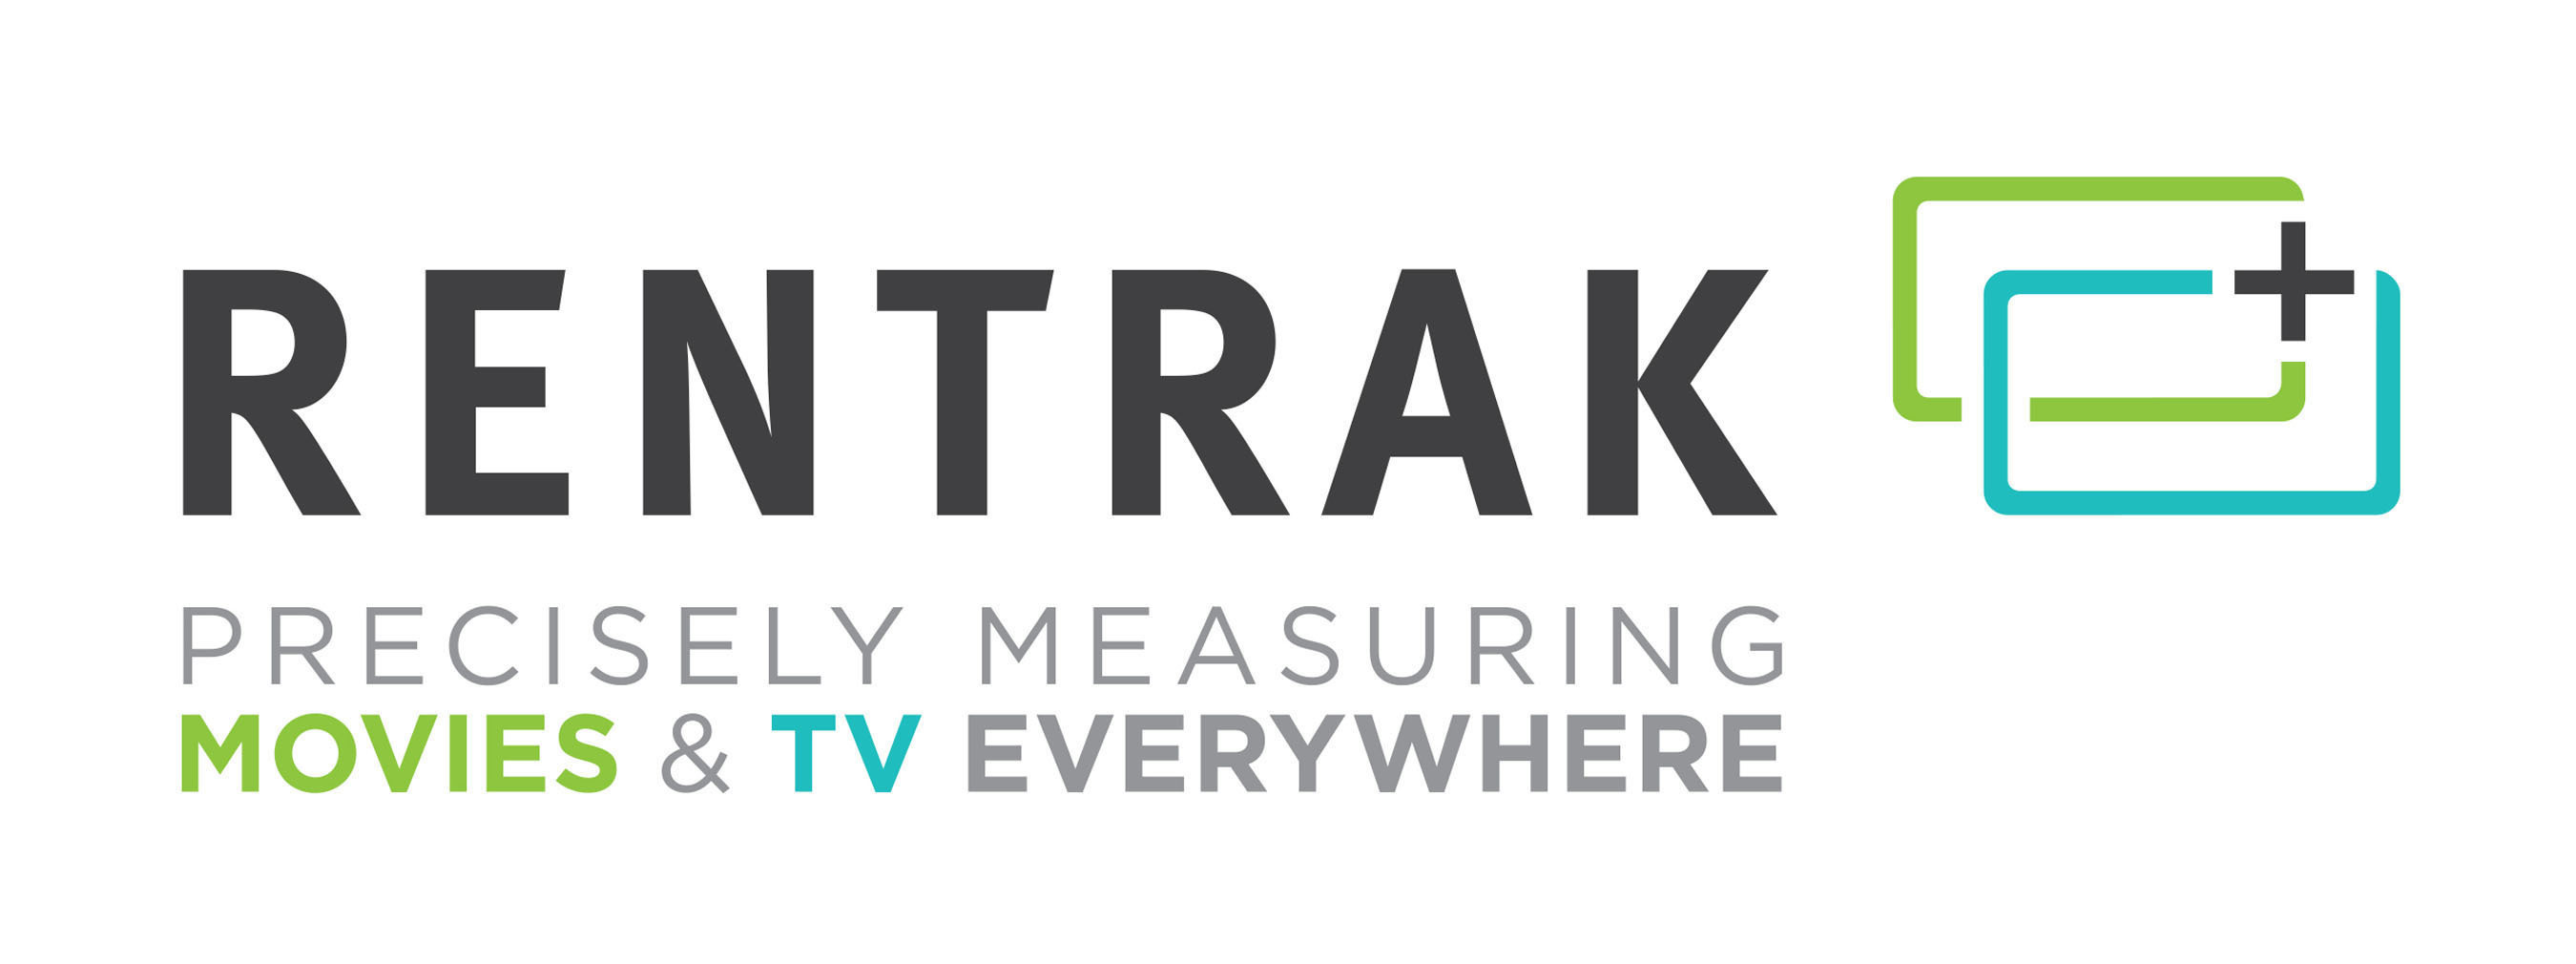 Rentrak Announces Top DVD & Blu-ray Sales and Rentals for Week Ending August 17, 2014